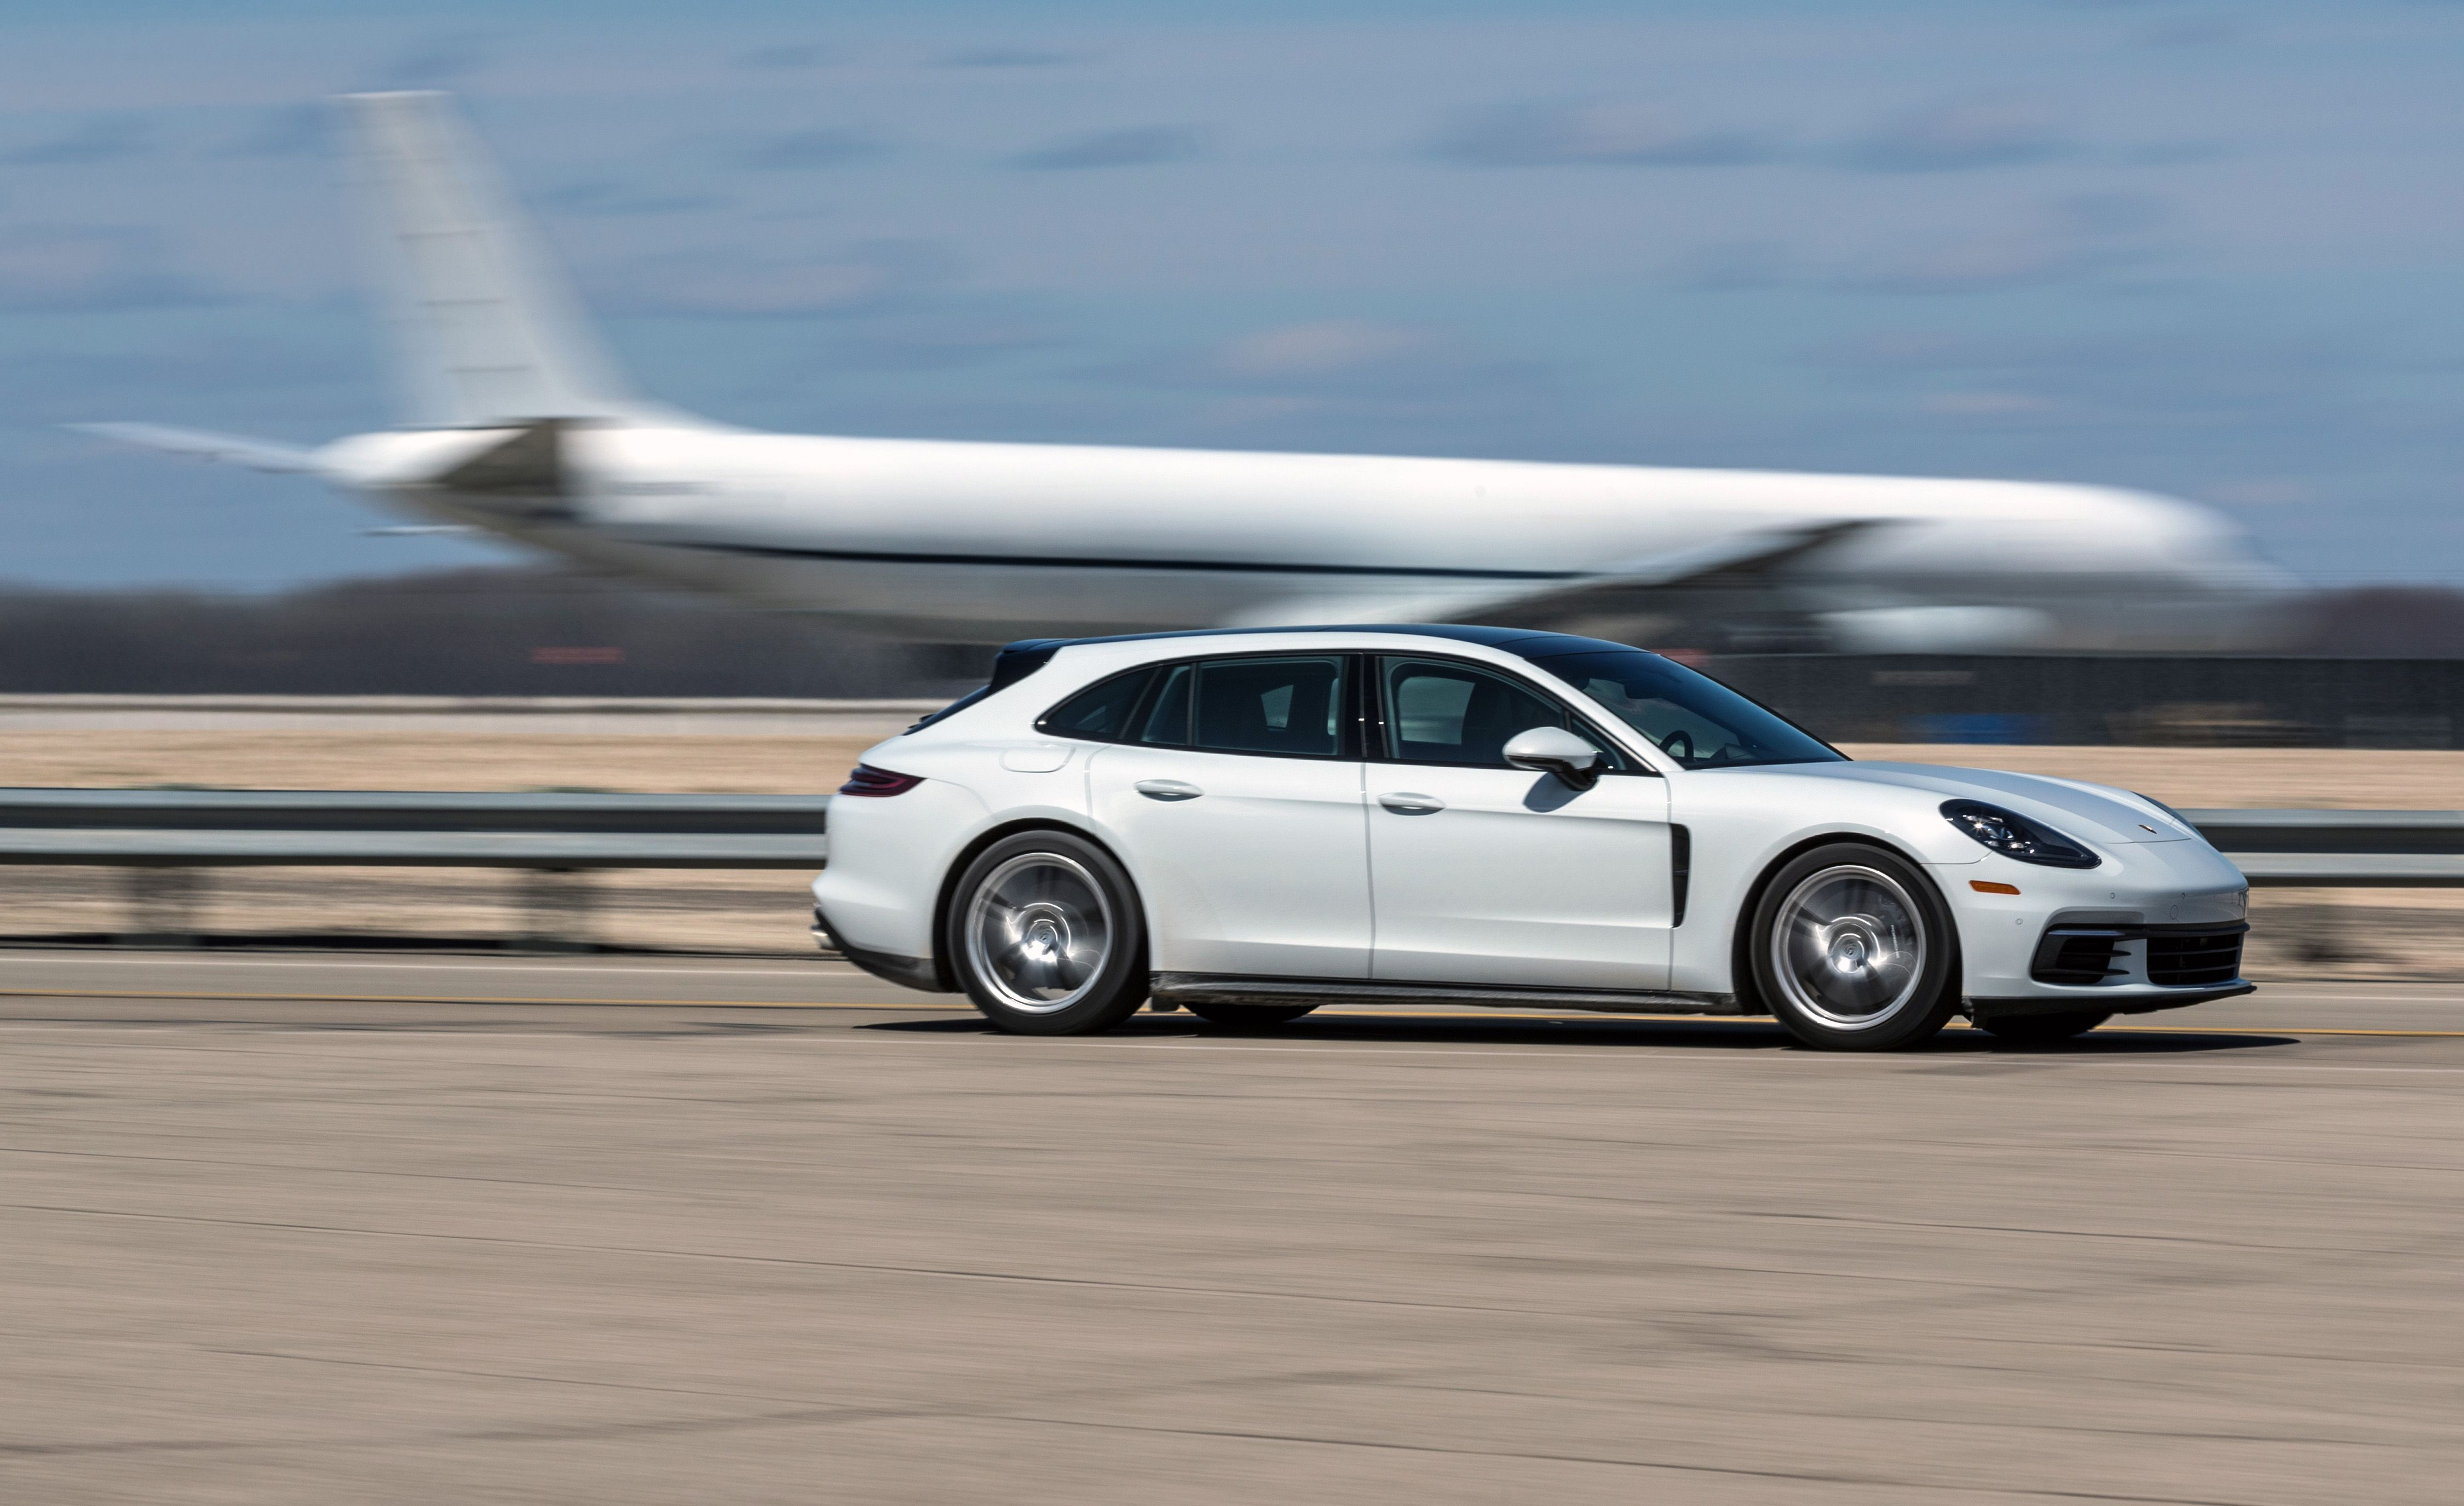 2018 Porsche Panamera 4 and 4S Sport Turismo \u2013 Wicked Wagons